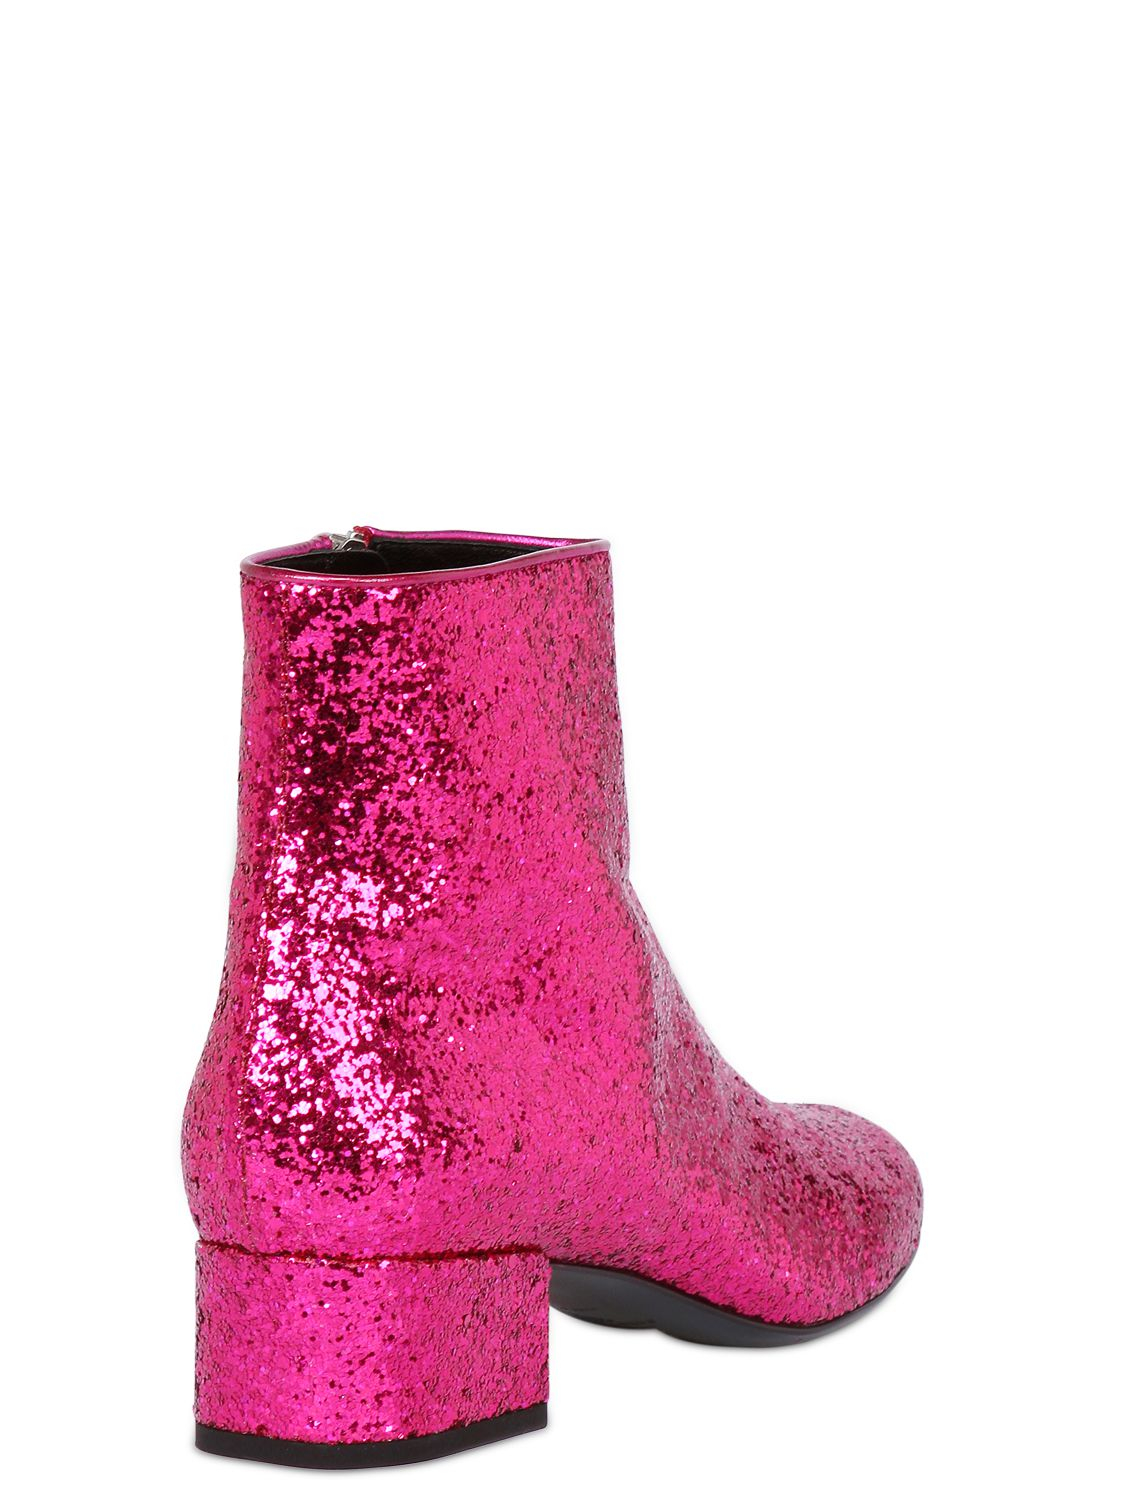 Saint laurent 40mm Babies Glittered Leather Ankle Boot in ...